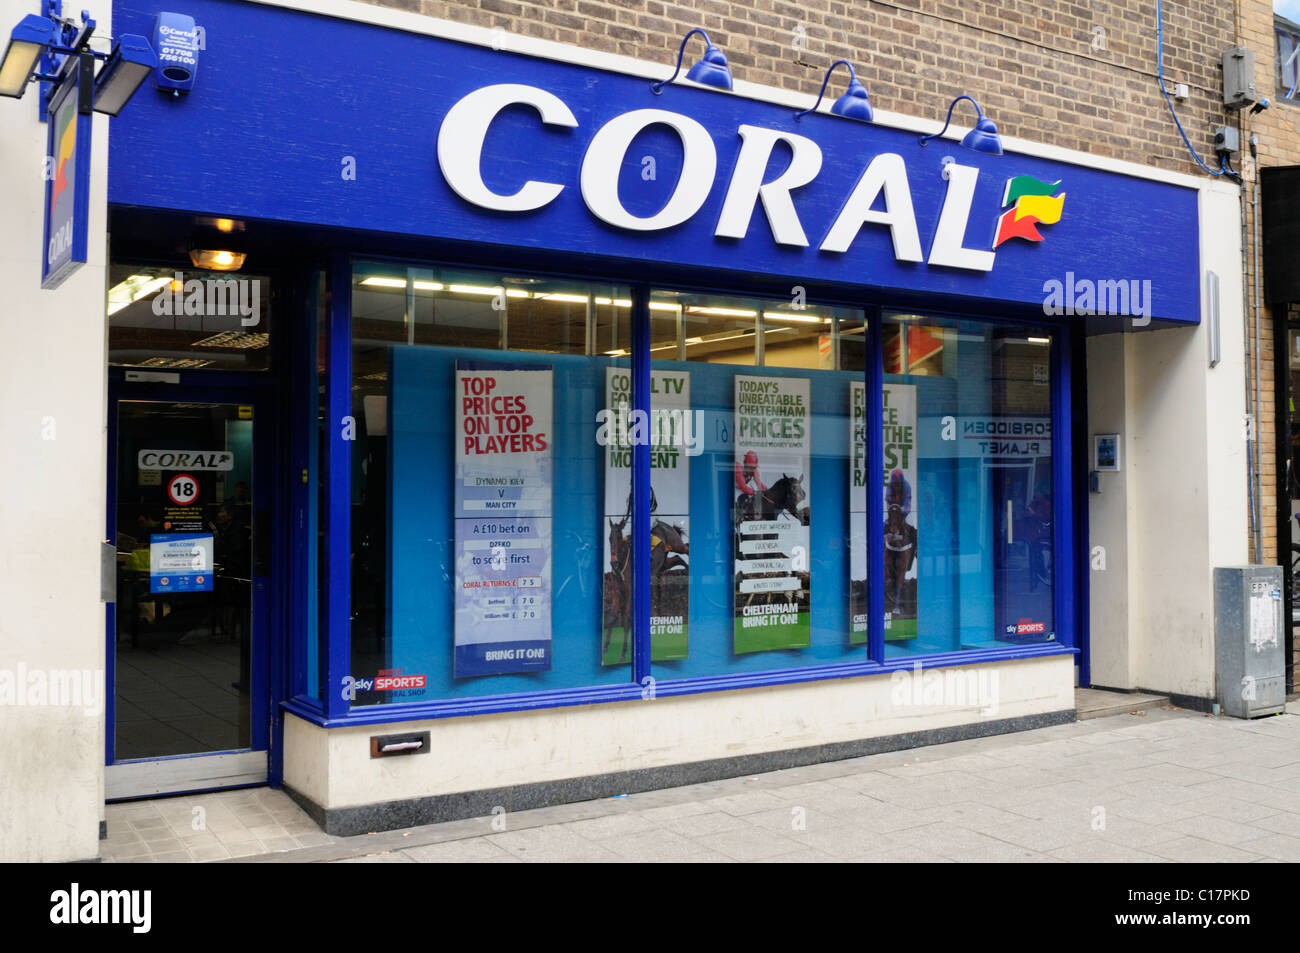 Coral betting Shop, Cambridge, England, Uk - Stock Image